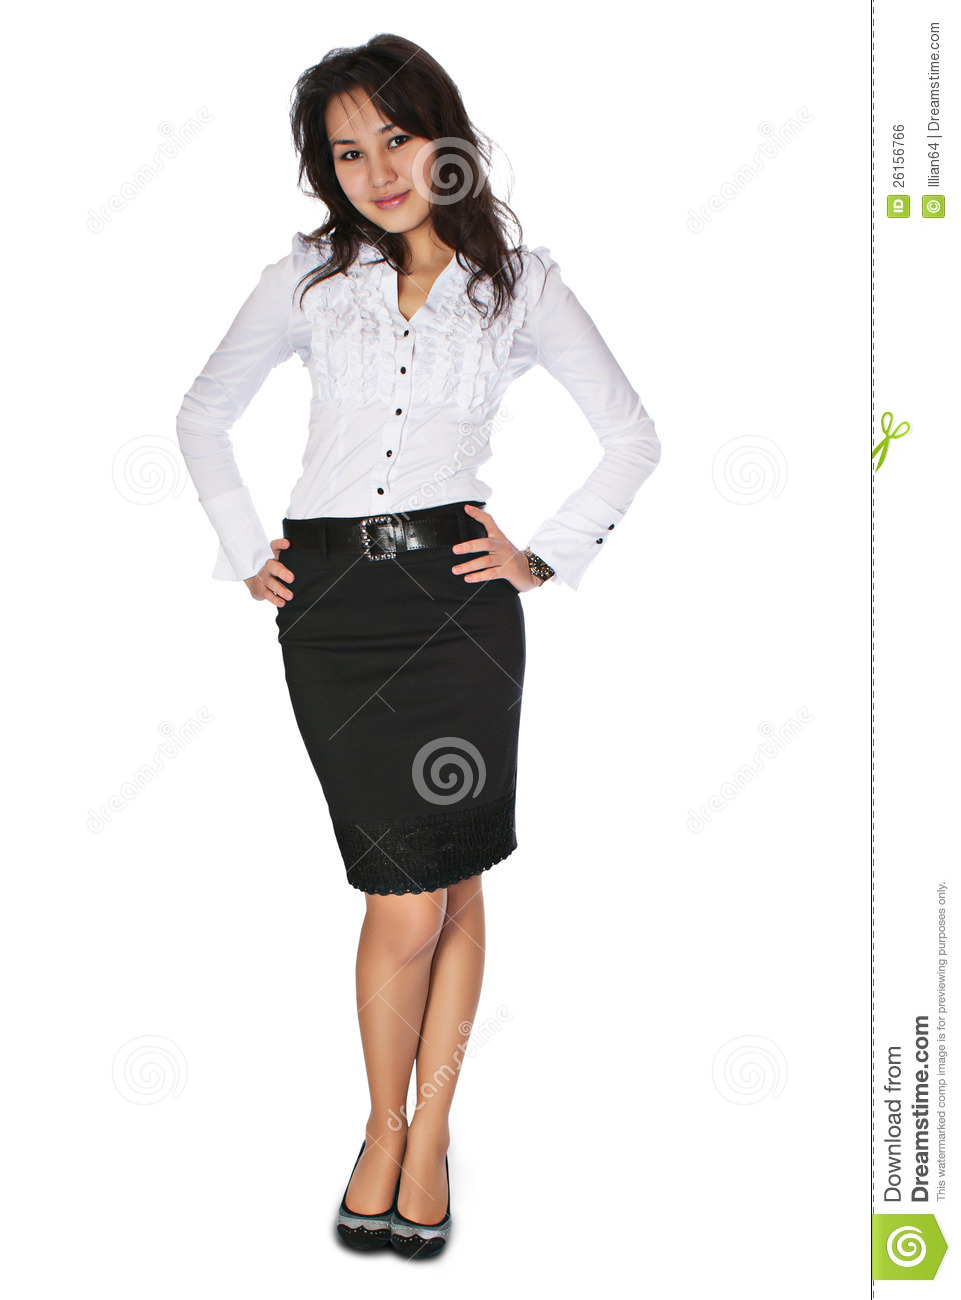 business-woman-full-body-26156766.jpg